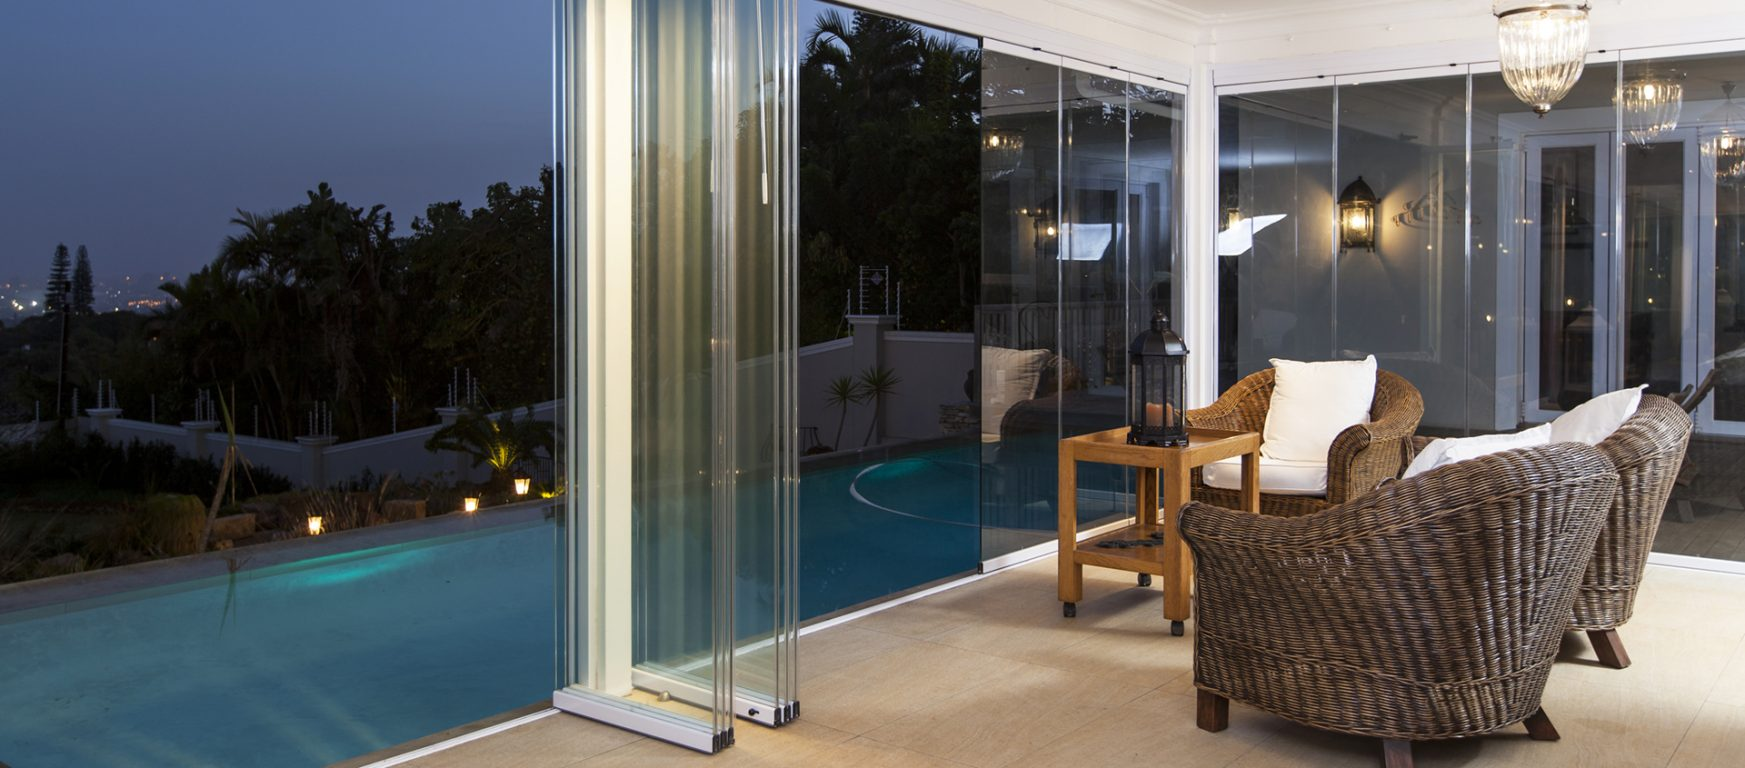 Sunflex SF 25 sliding glass panels